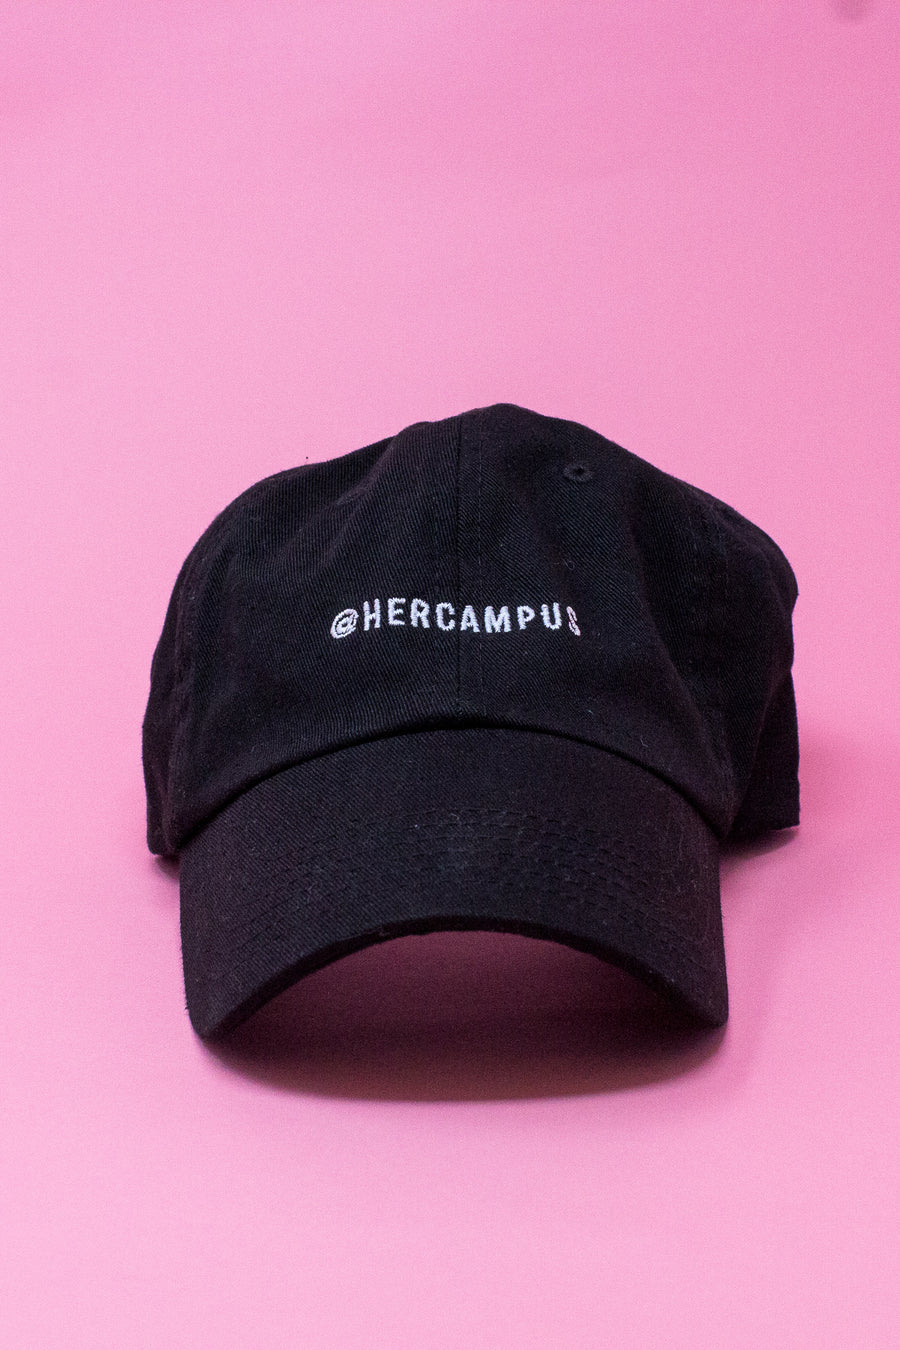 @HERCAMPUS Baseball Cap - Black